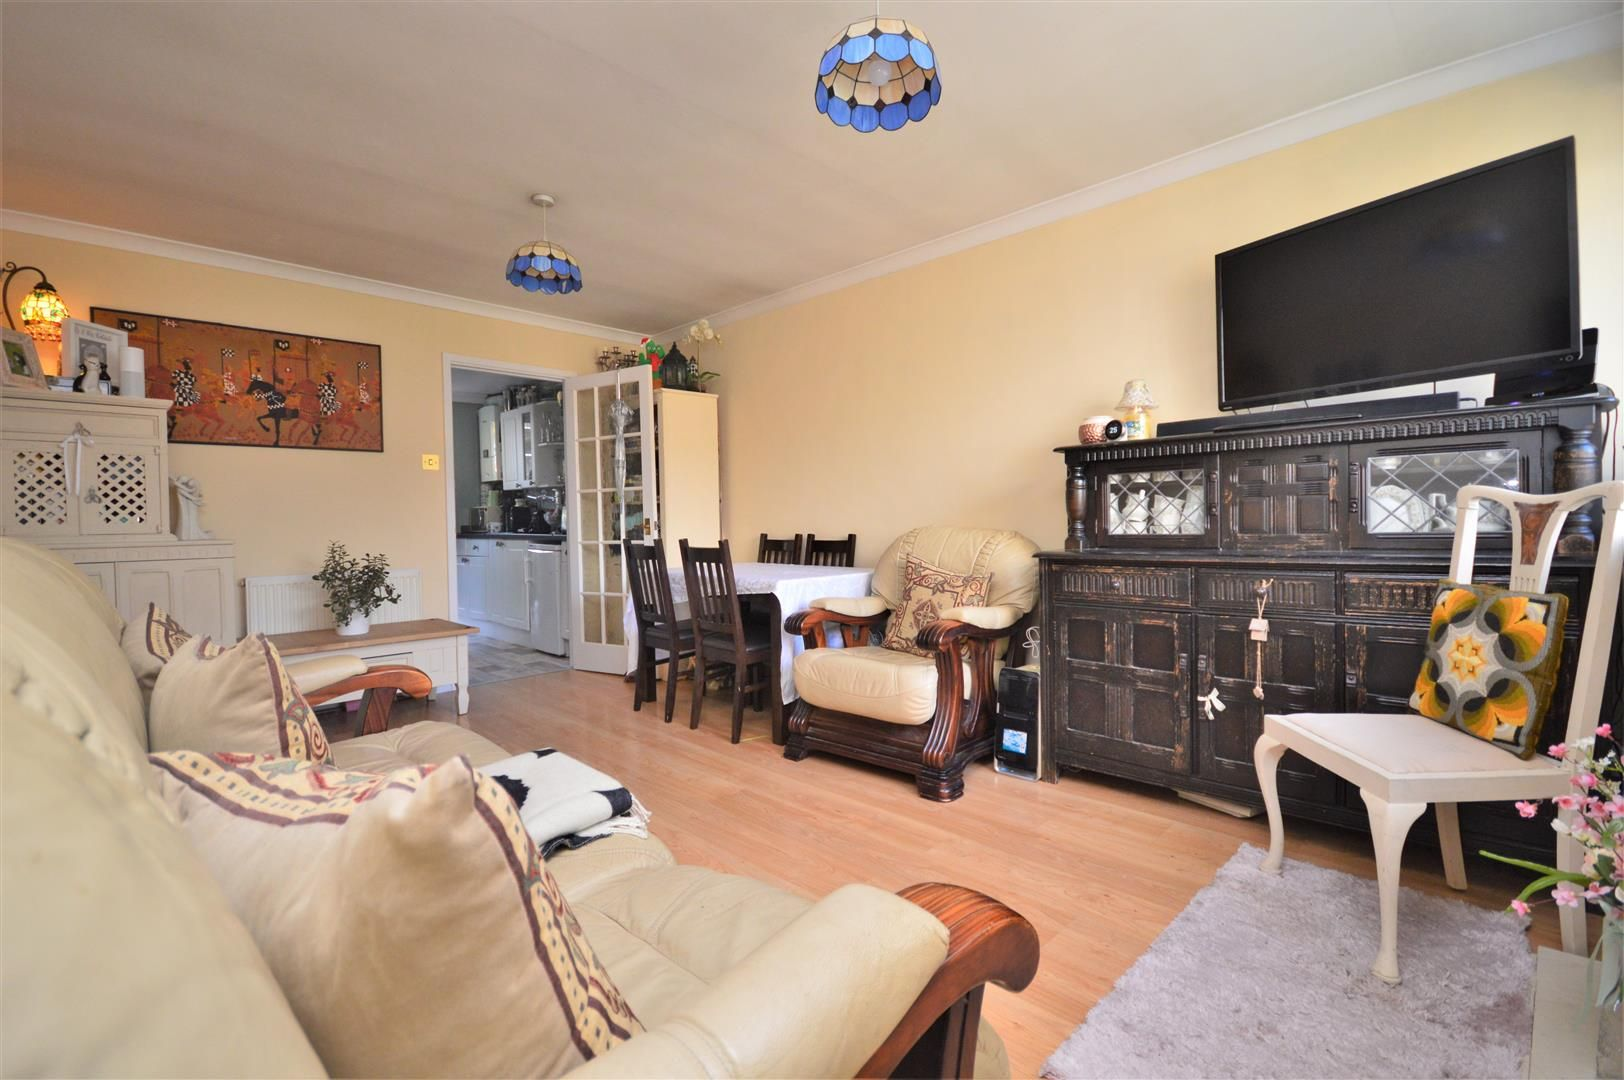 2 bed apartment for sale in Hereford 4